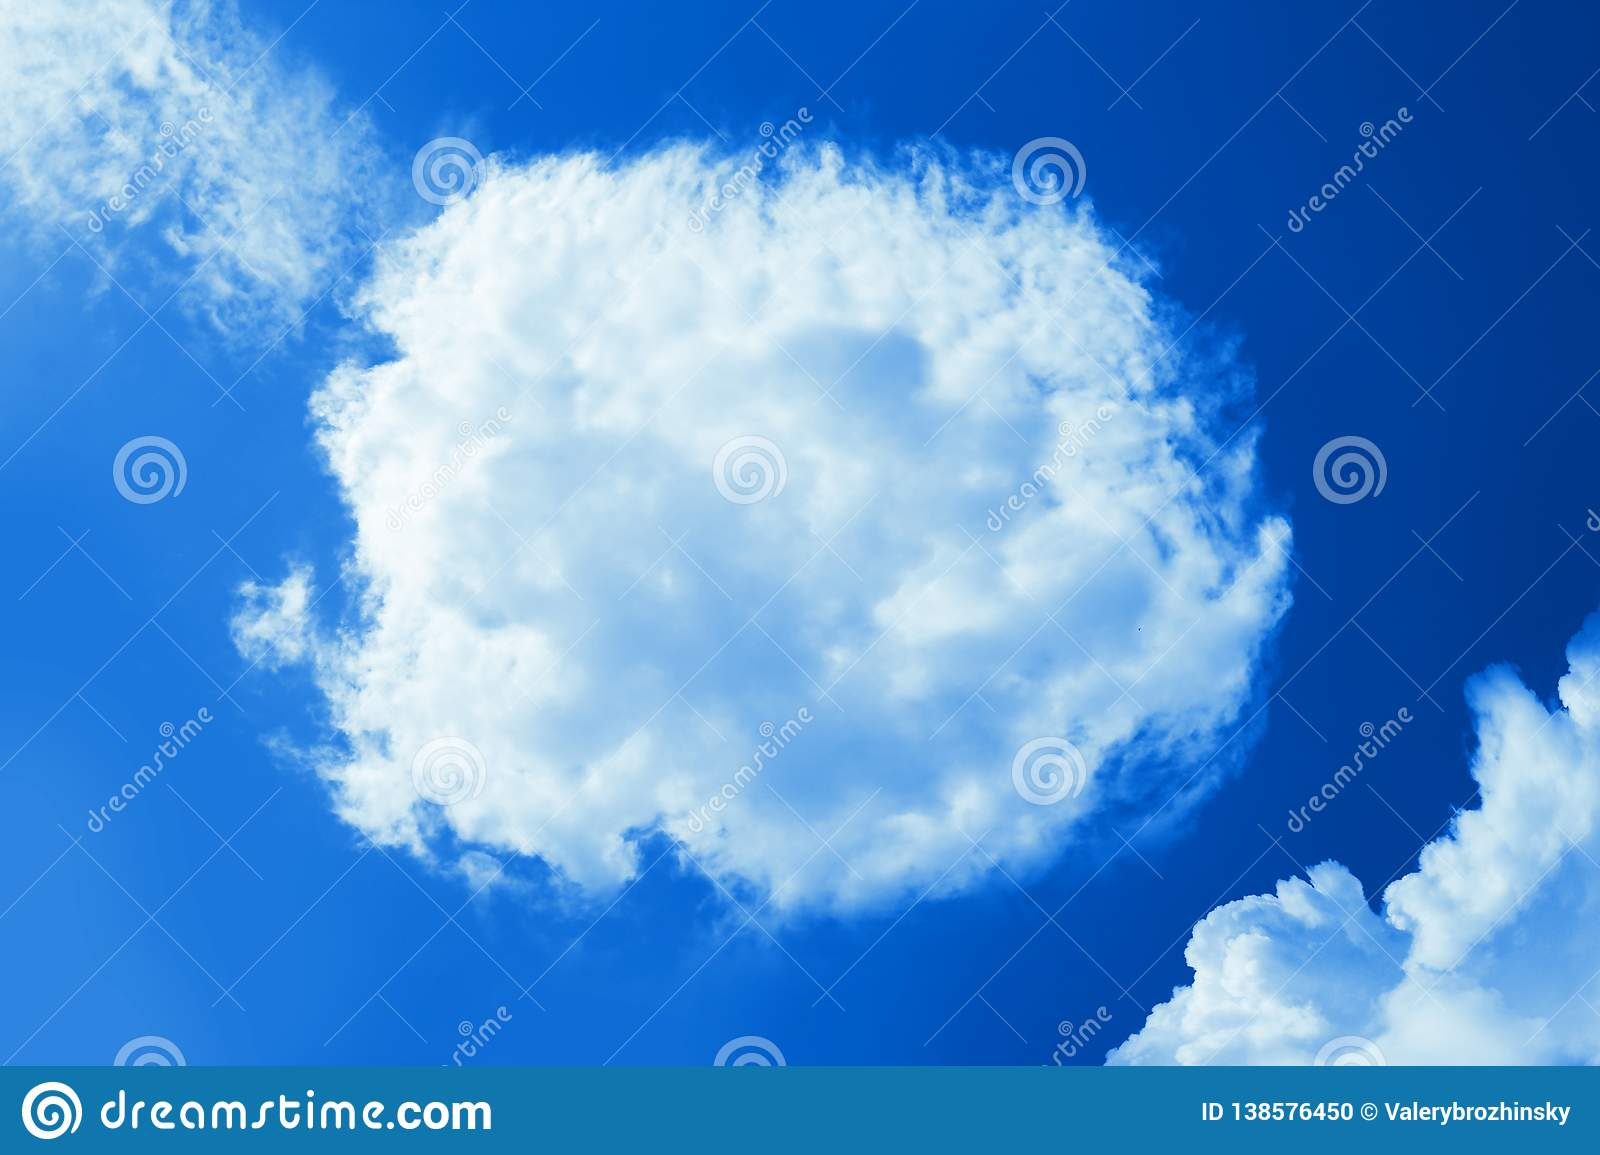 Fluffy round cloud in clear blue sky. Peaceful cloudy sky natural background, frame. Sunny day, light. Divine shining background